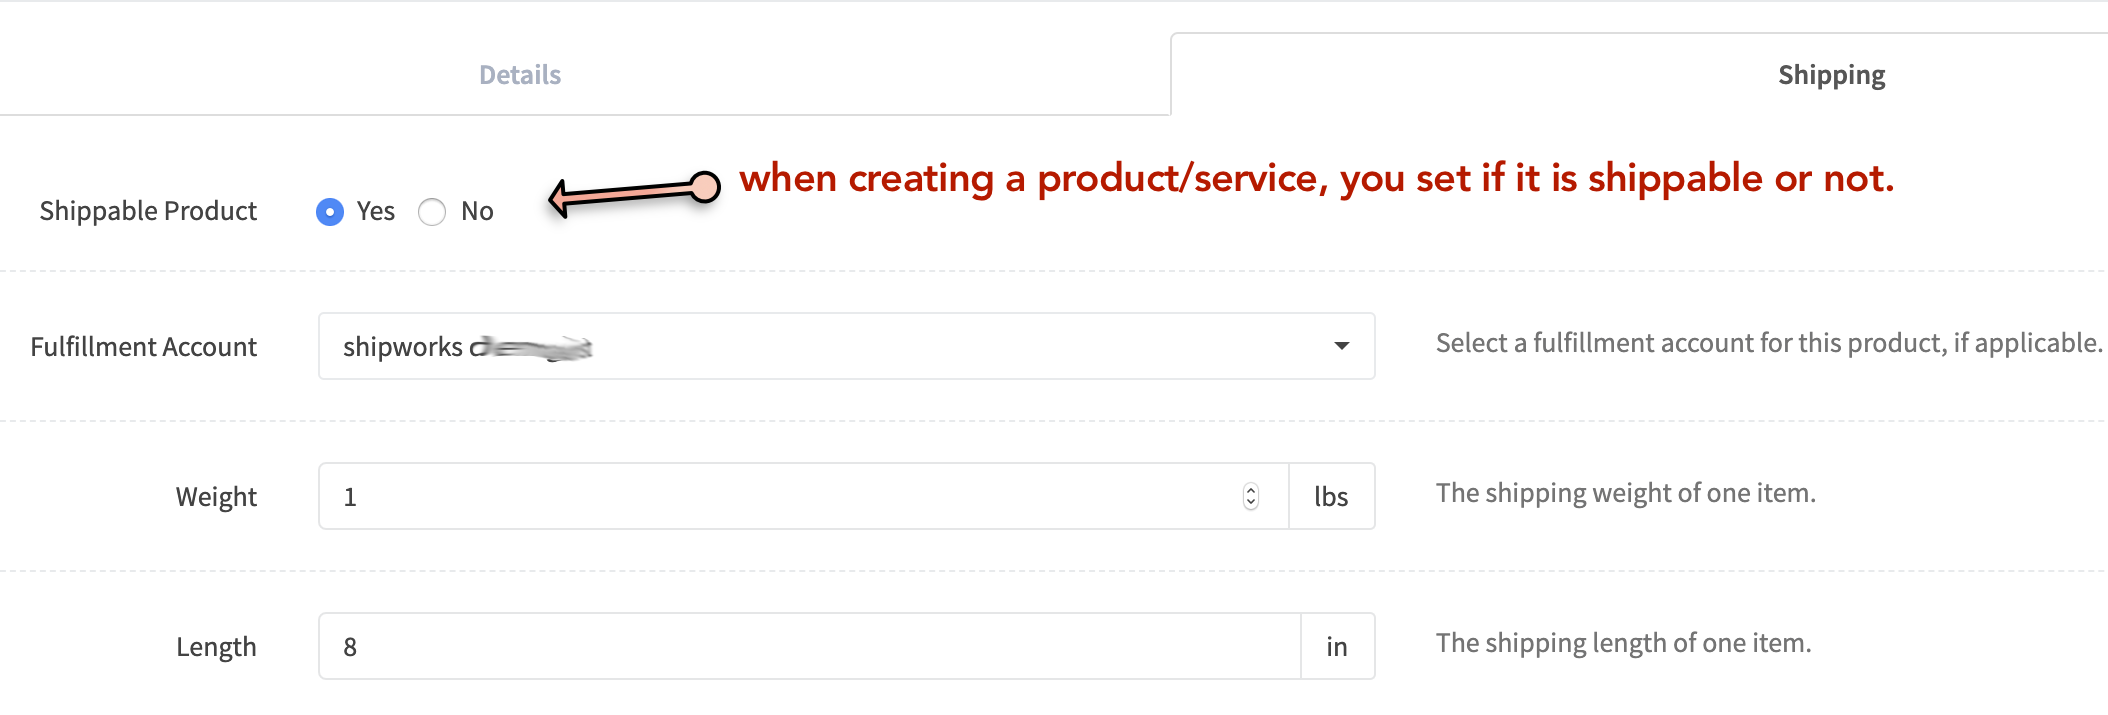 image showing how you set a product to be shippable or non-shippable in your admin panel.